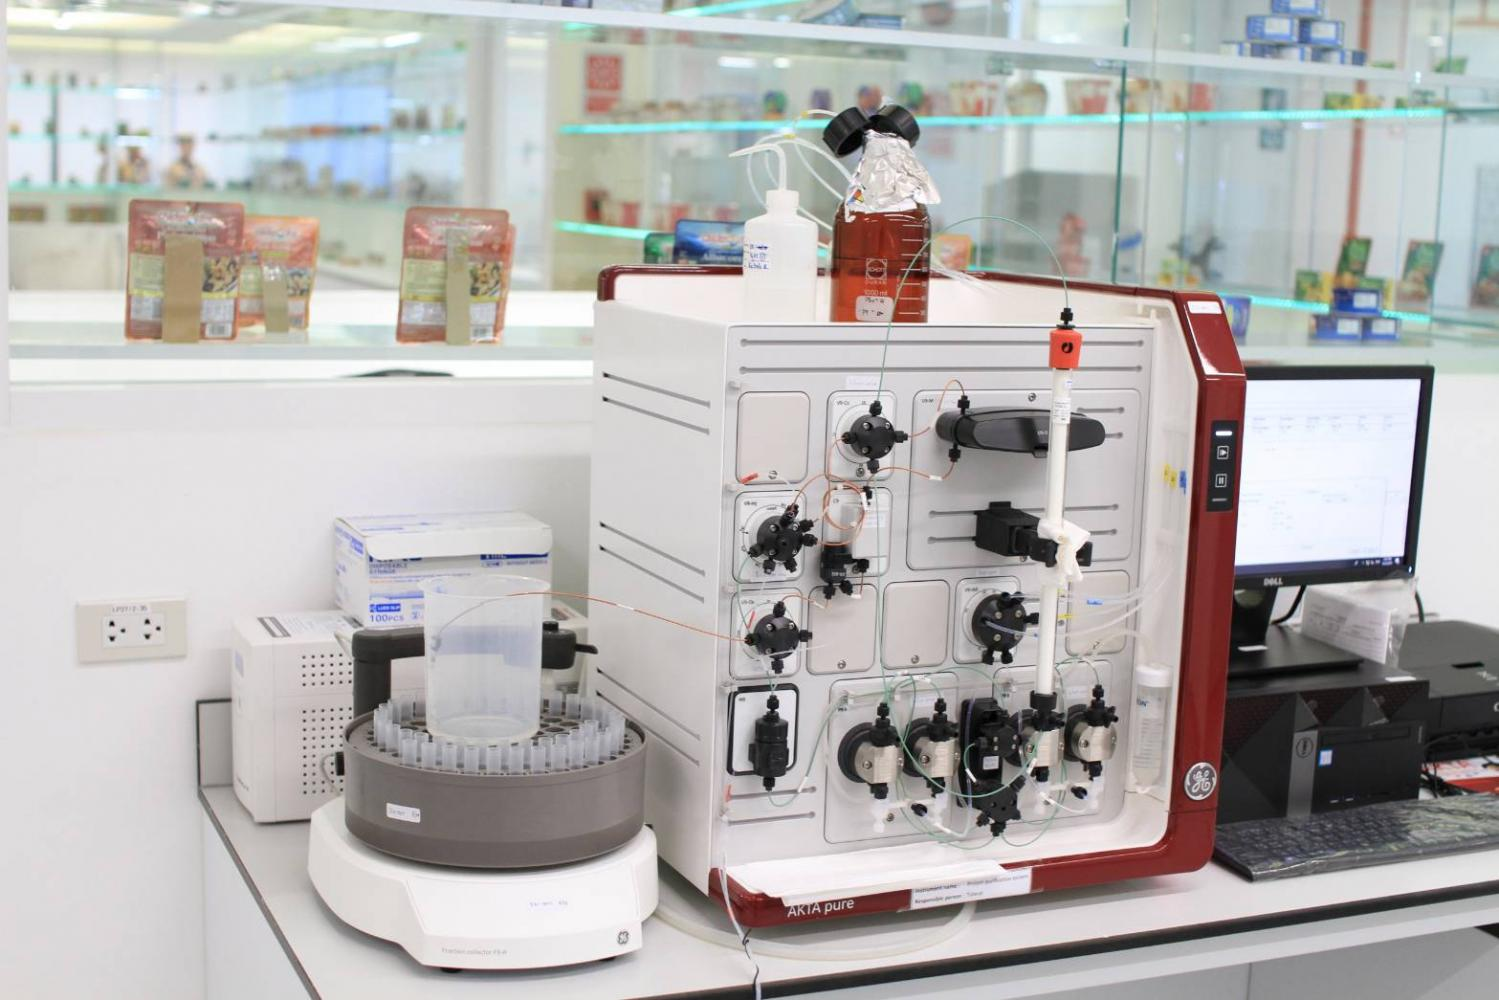 Protein analysis is conducted at Thai Union using a protein purification system.